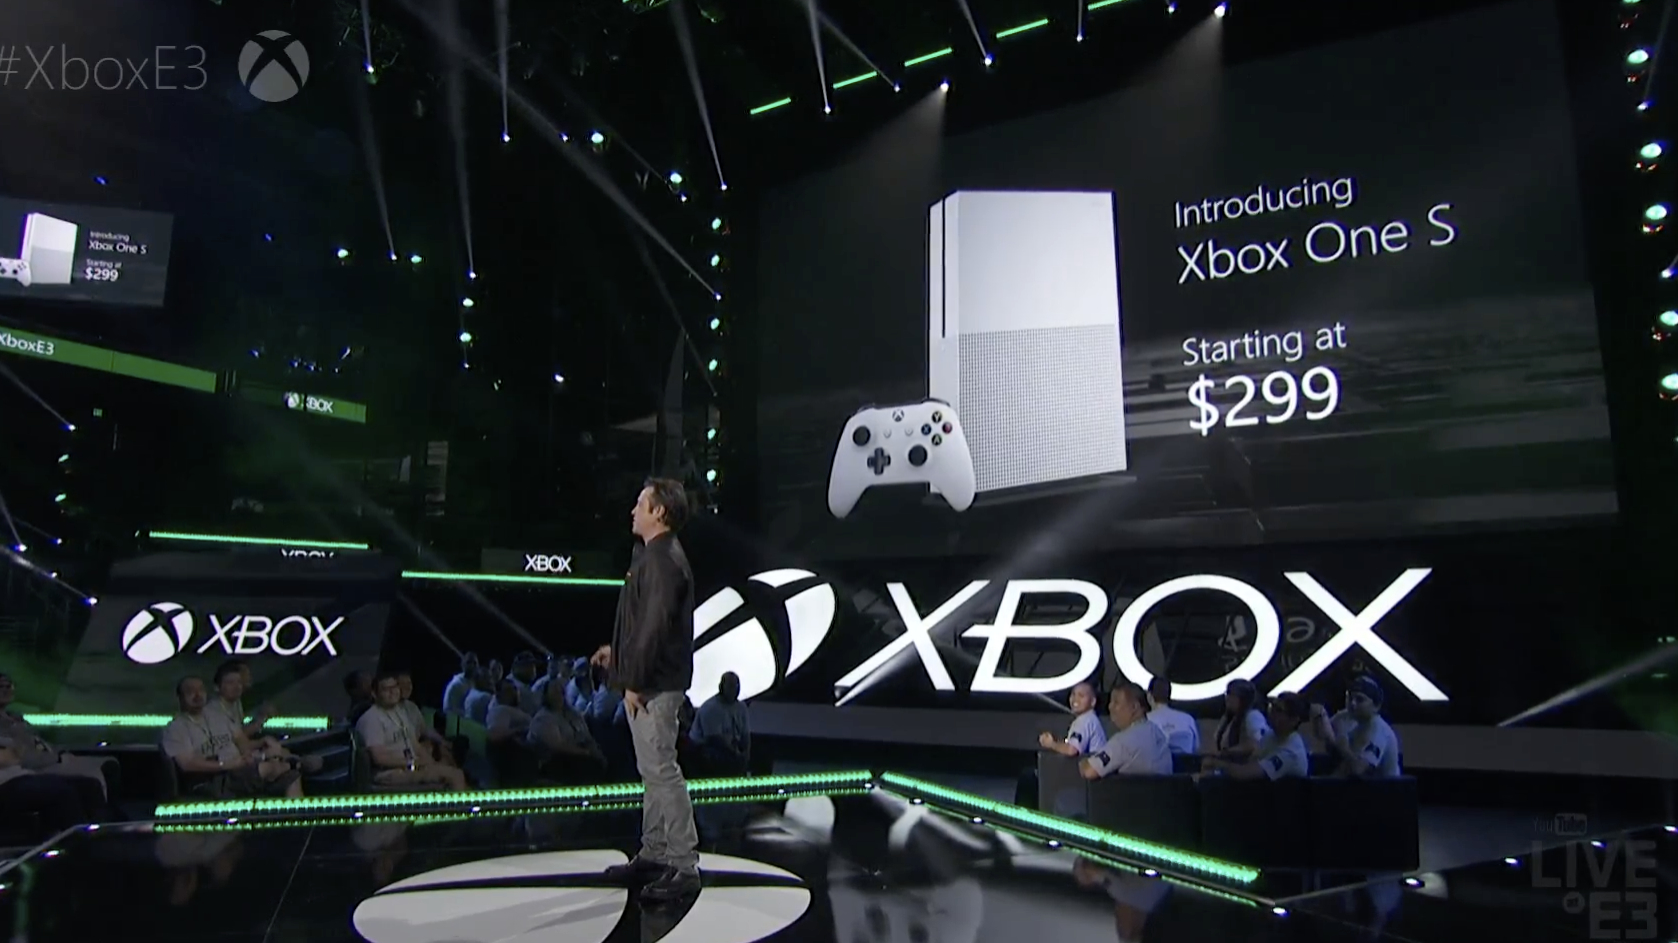 Xbox One Kinect is dead - so pour one out | TechRadar